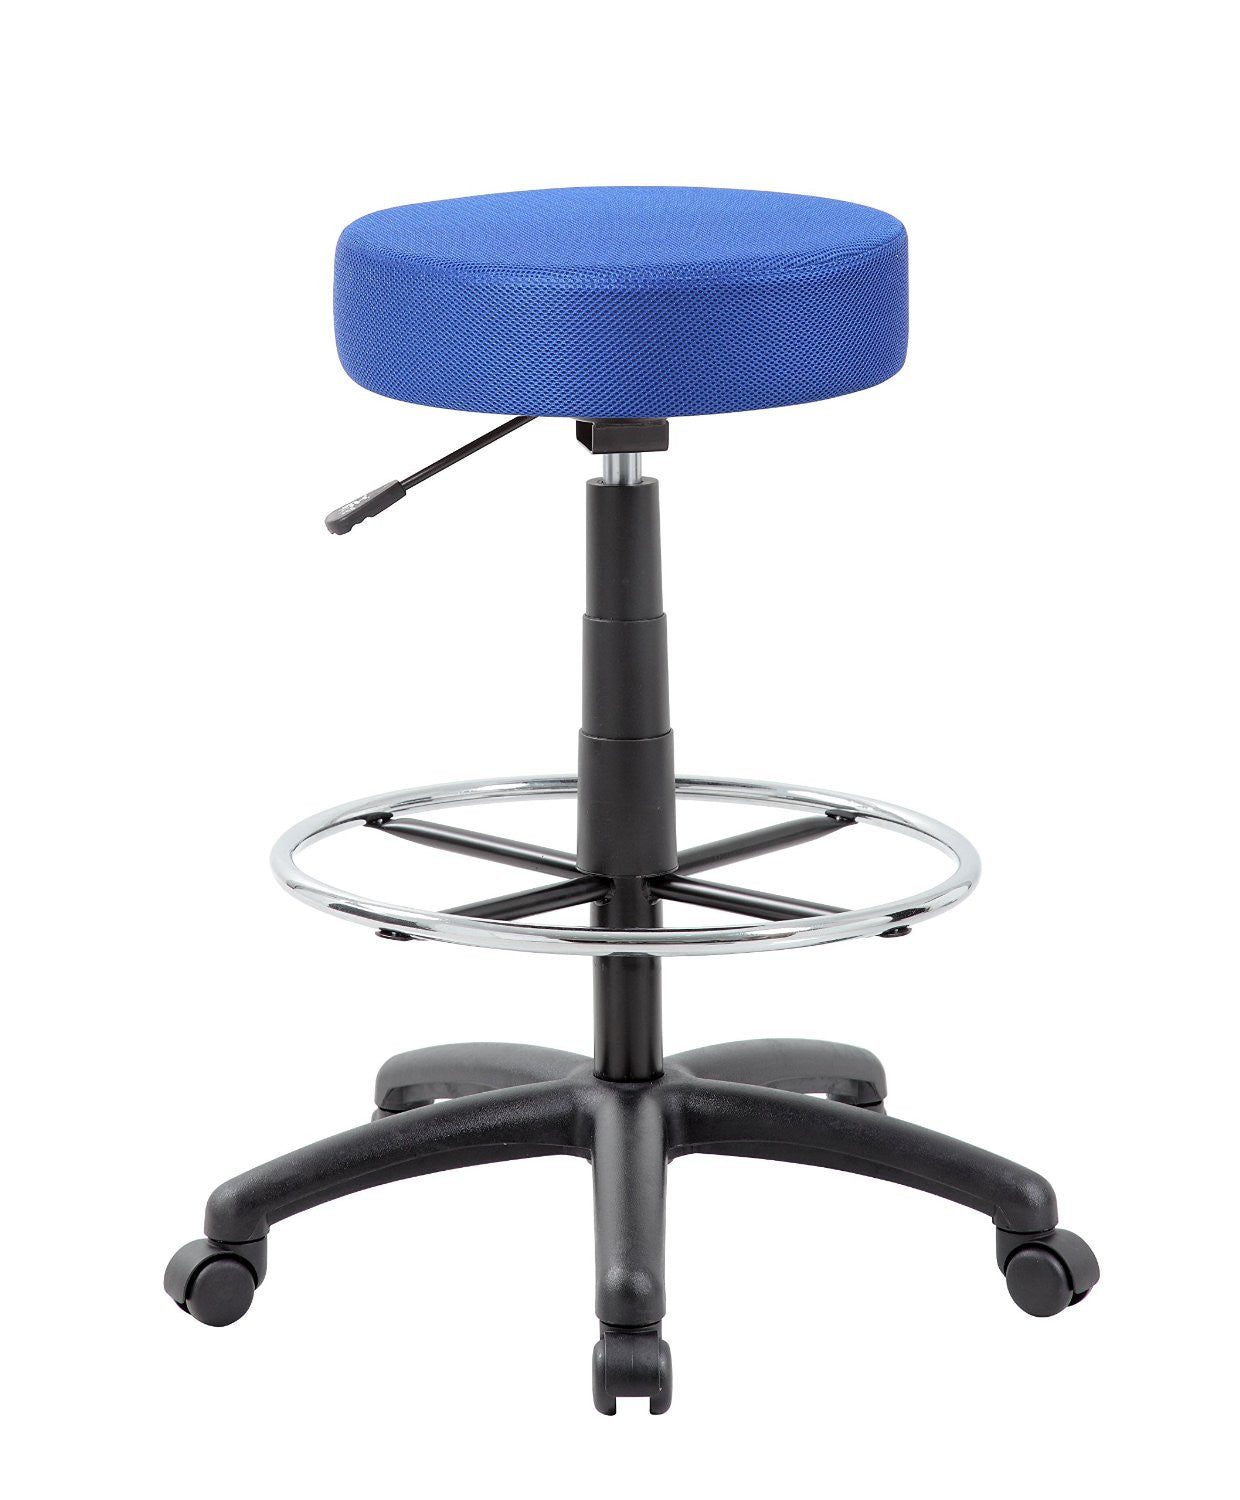 Boss Office Products B16210-BE The DOT drafting stool, Blue